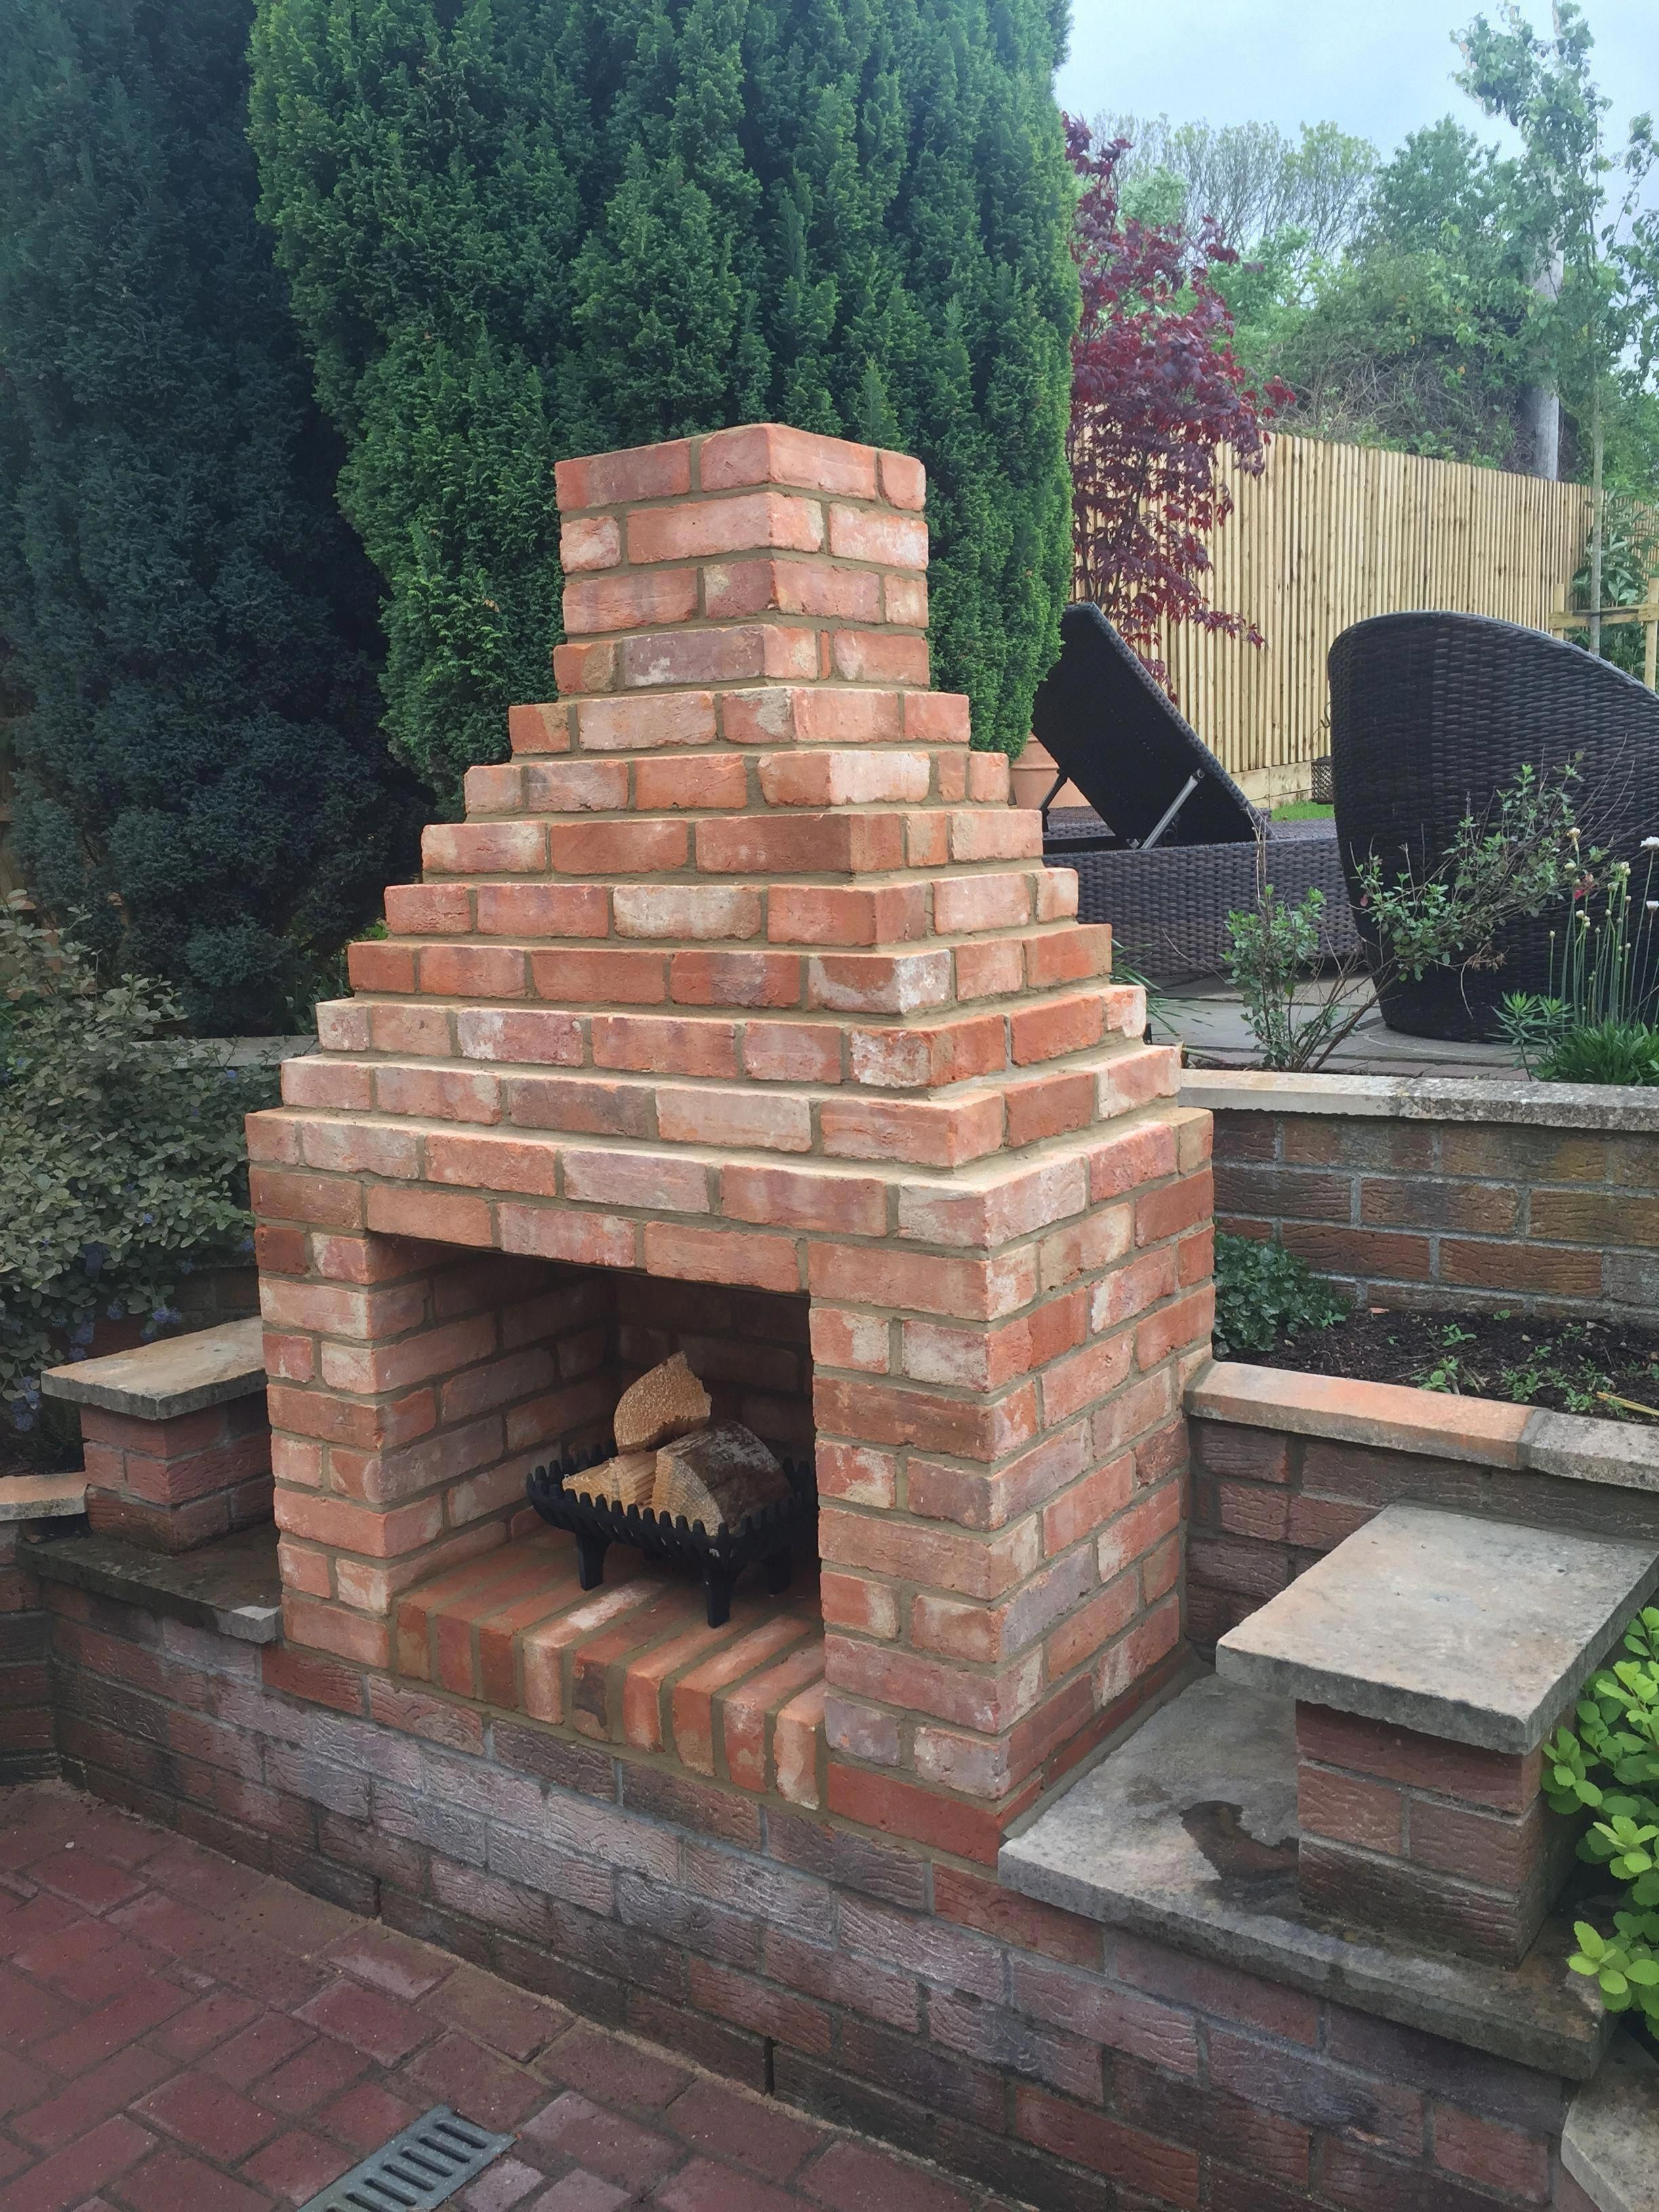 29 Outdoor Kitchen Design Ideas And Decorating Pictures For Your Inspirations Amazing Outdoor Fireplace Patio Outdoor Fireplace Brick Diy Outdoor Fireplace